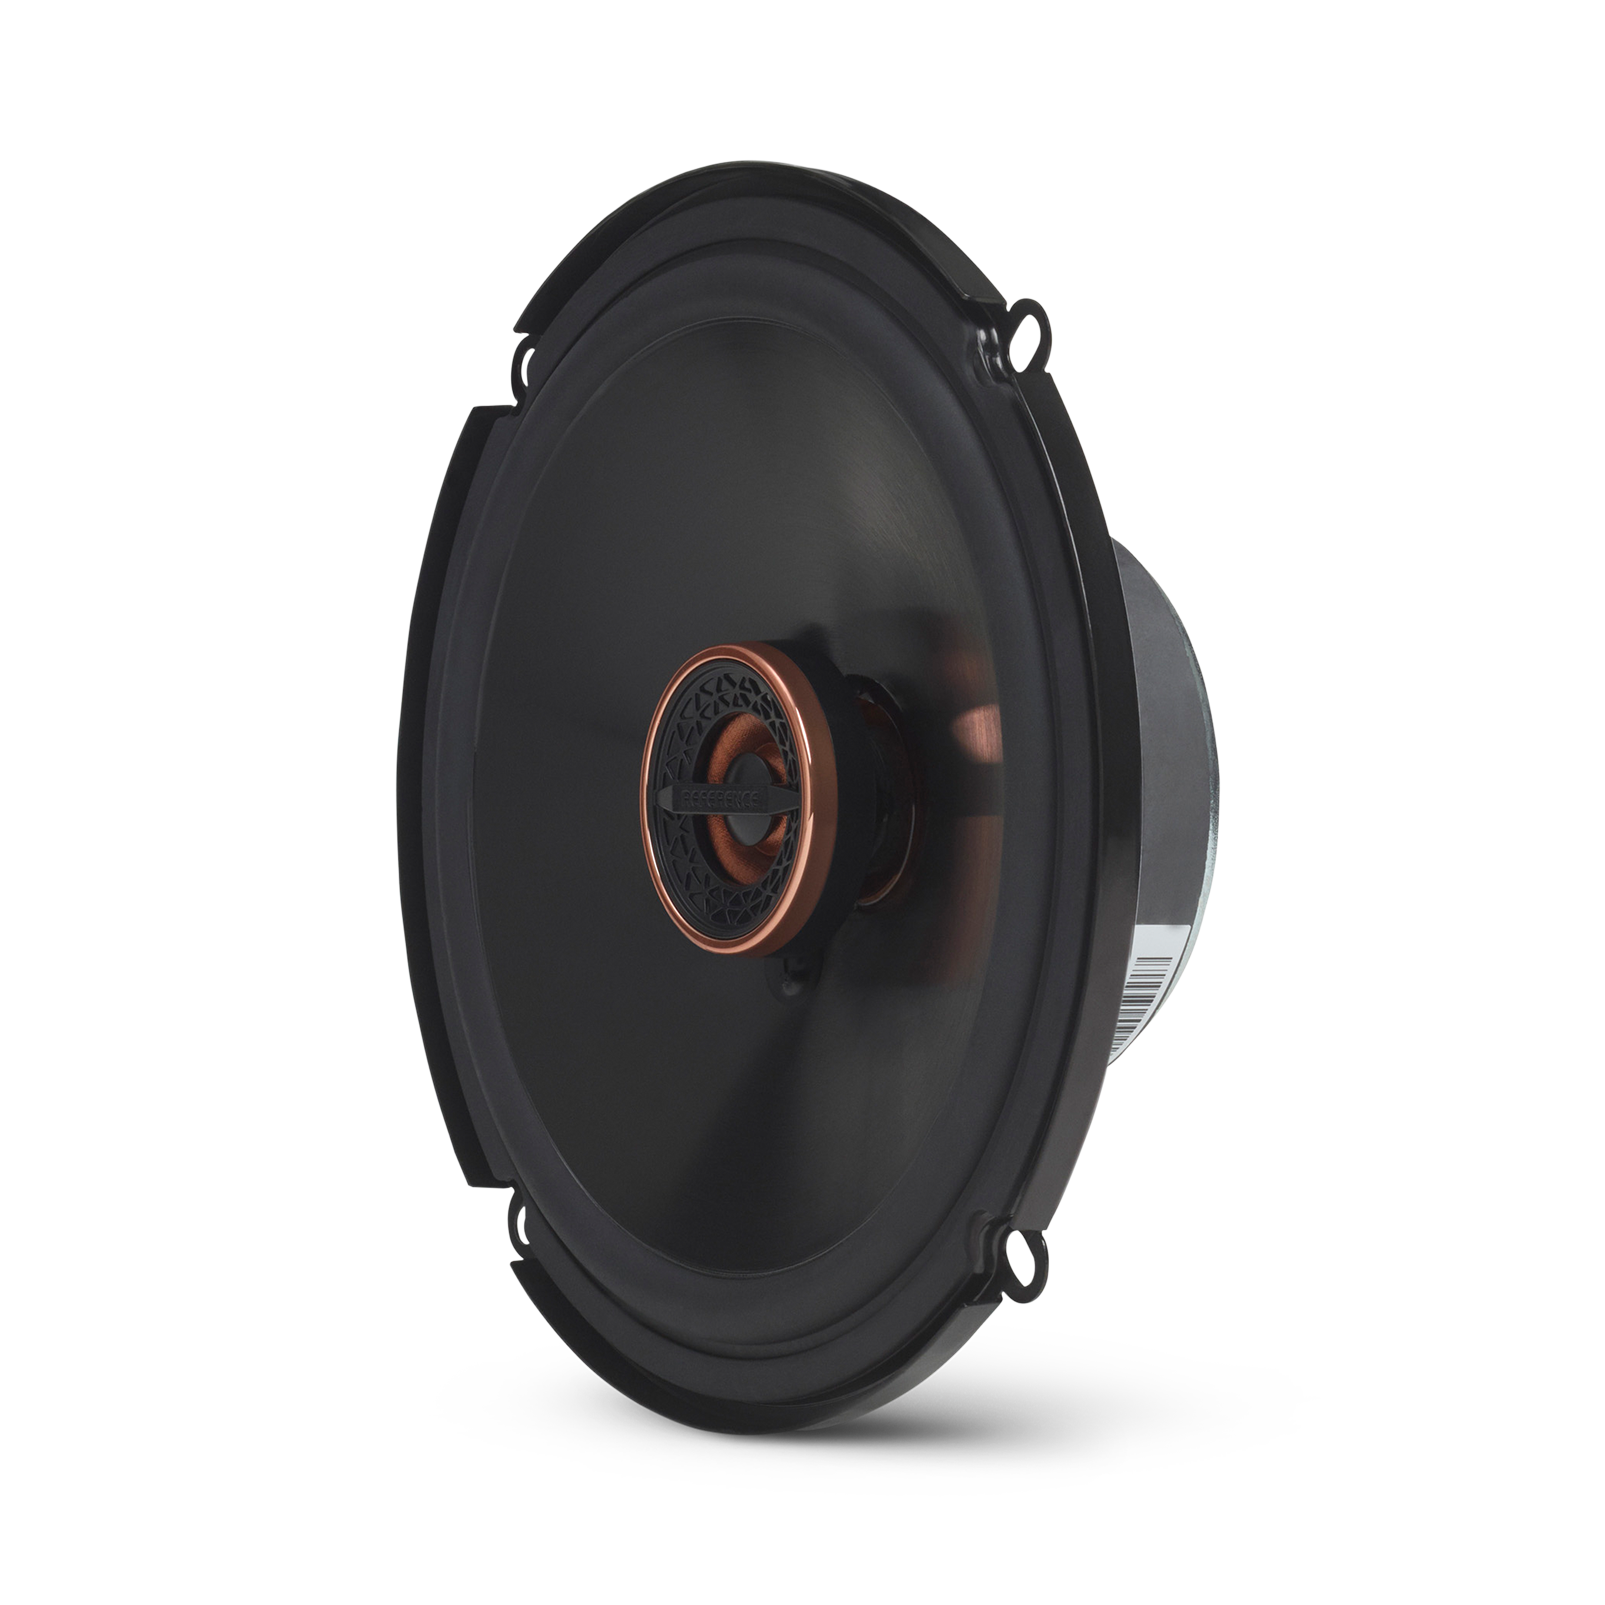 """Reference 6532ex - Black - 6-1/2"""" (160mm) shallow-mount coaxial car speaker, 165W - Detailshot 2"""